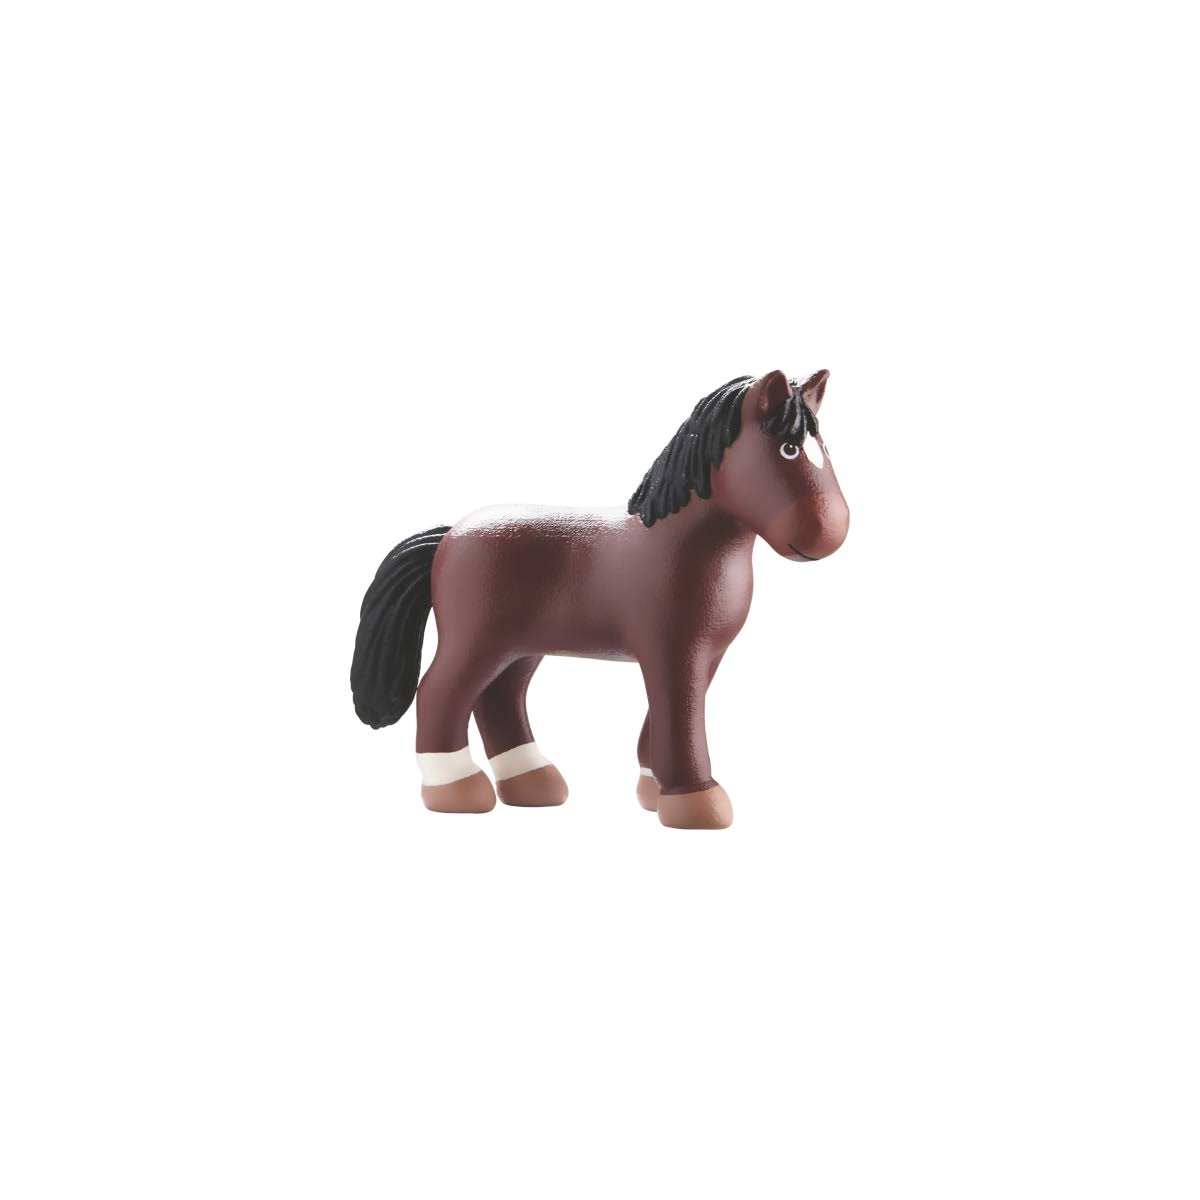 Haba Little Friends Kasper Horse Poseable Bendy Figure - Brown, 4.5""